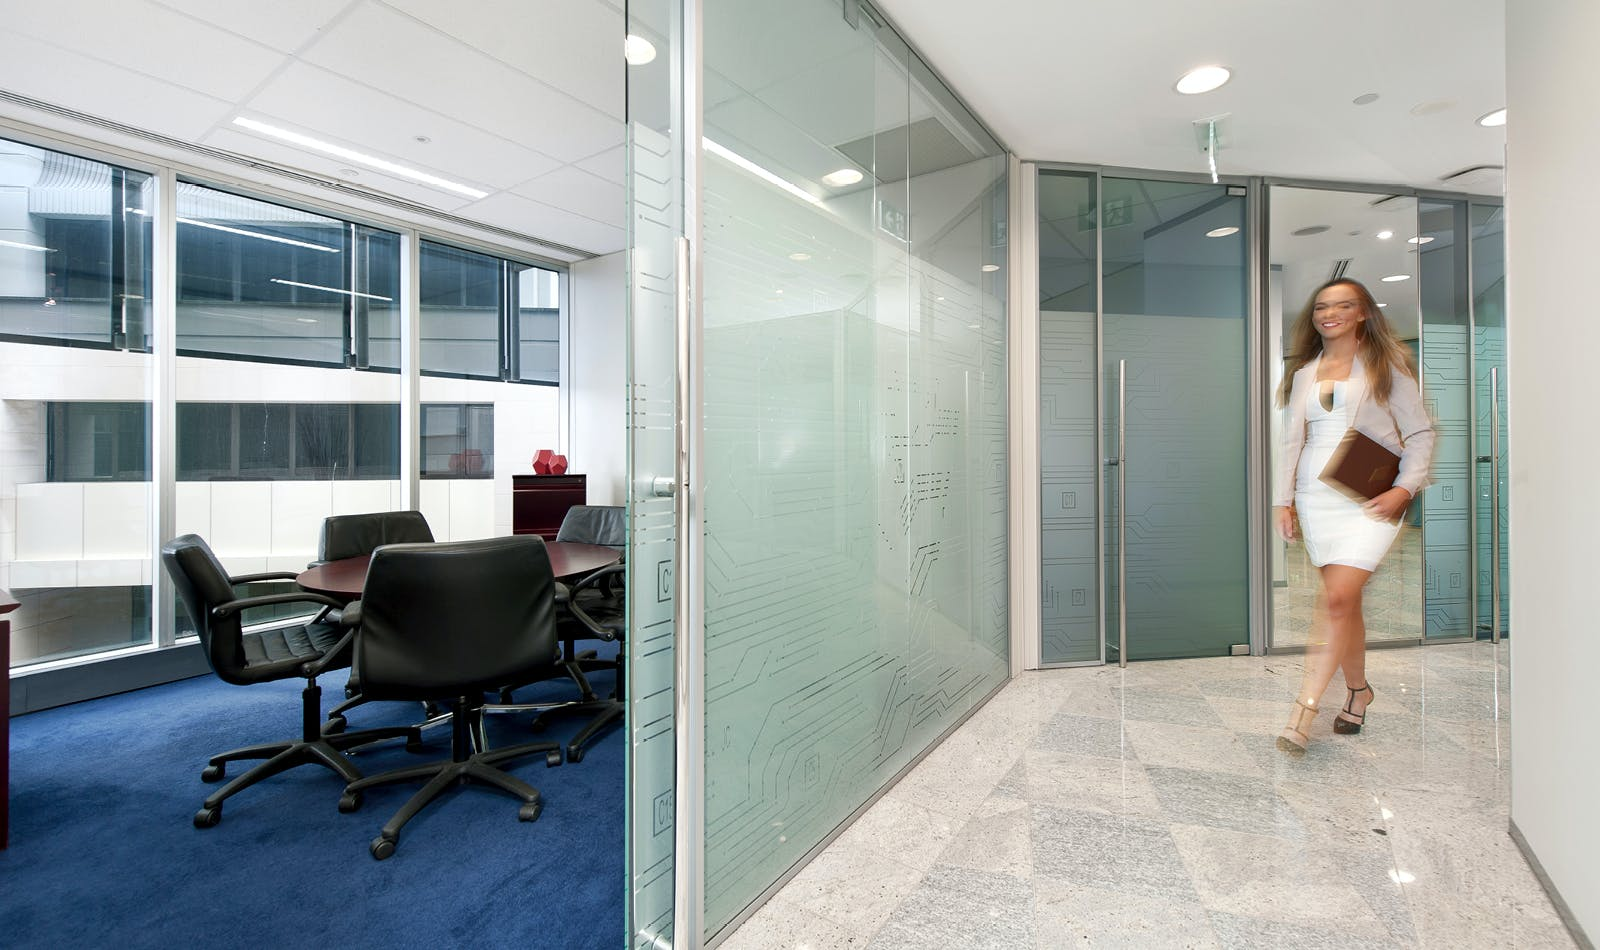 For 3, meeting room at Octagon Building, image 1